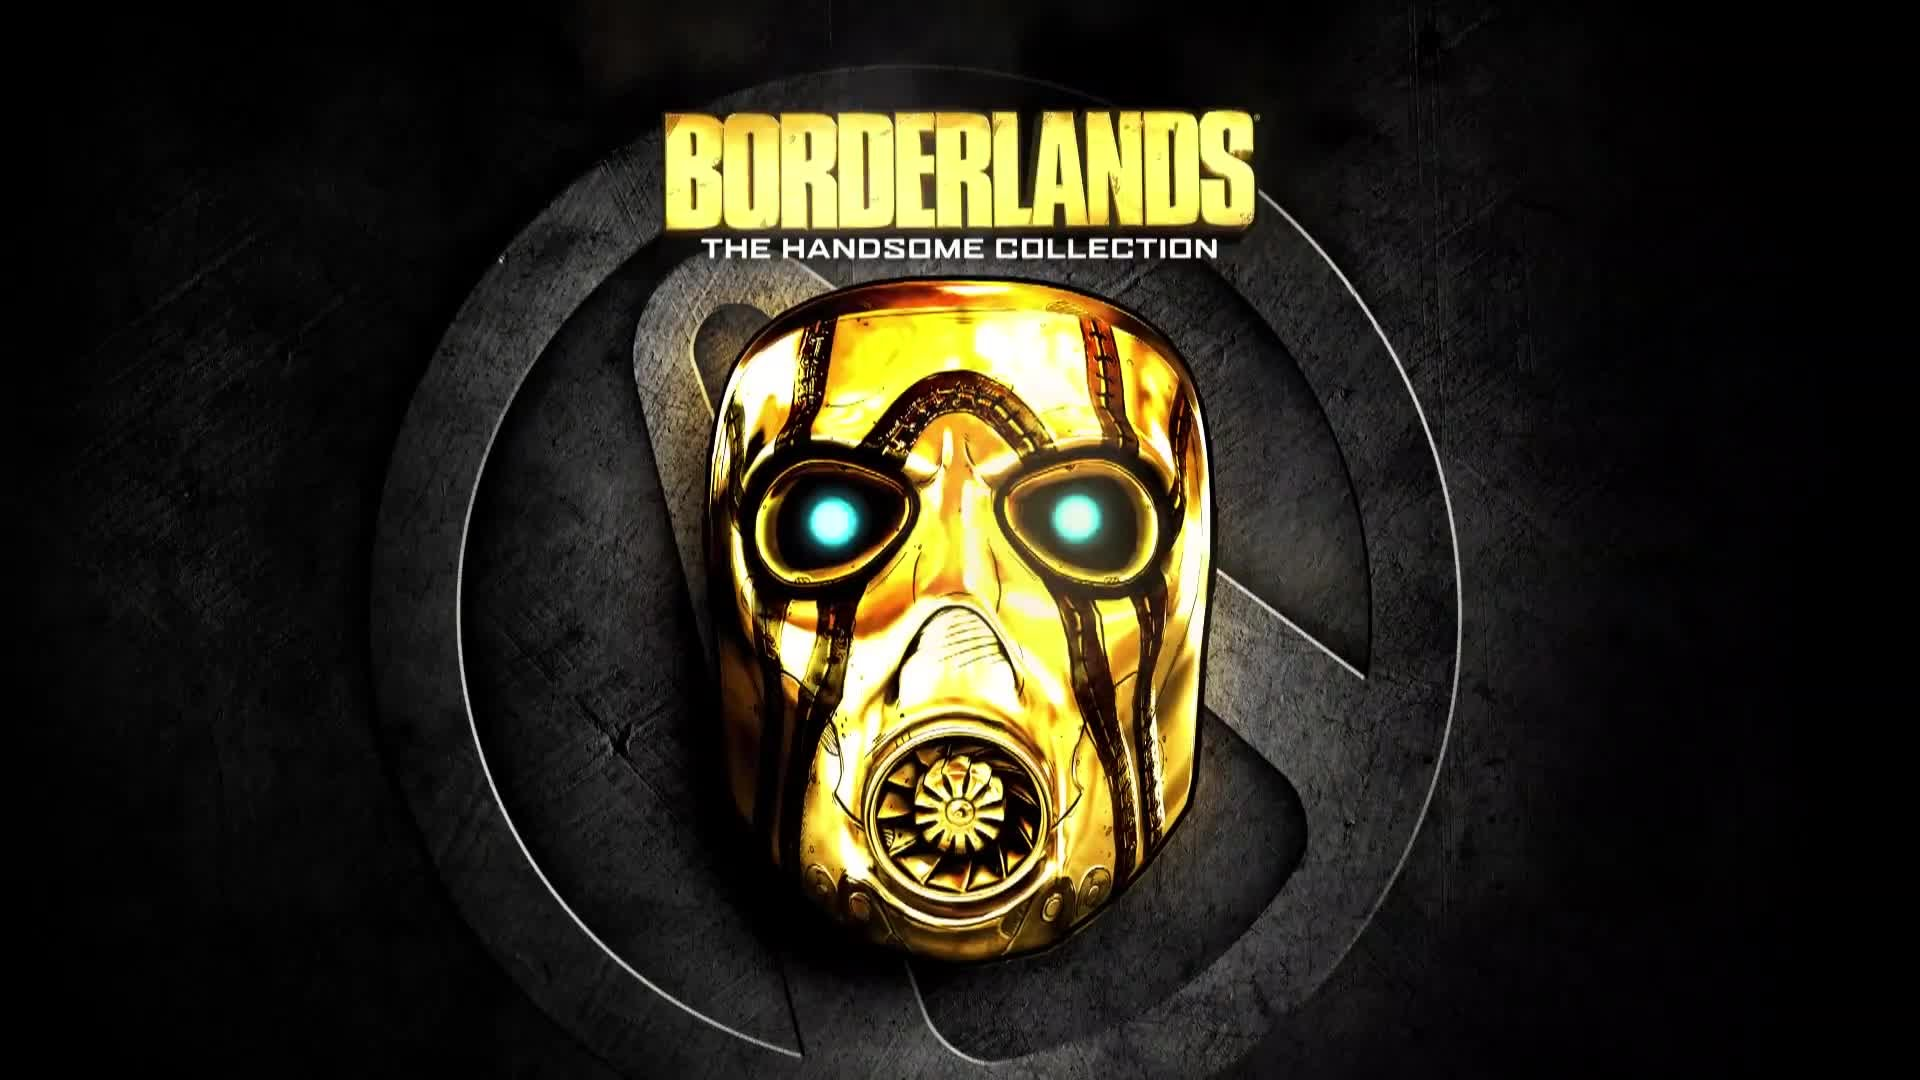 Borderlands-TheHandsomeCollection_16x9_Logo.jpg